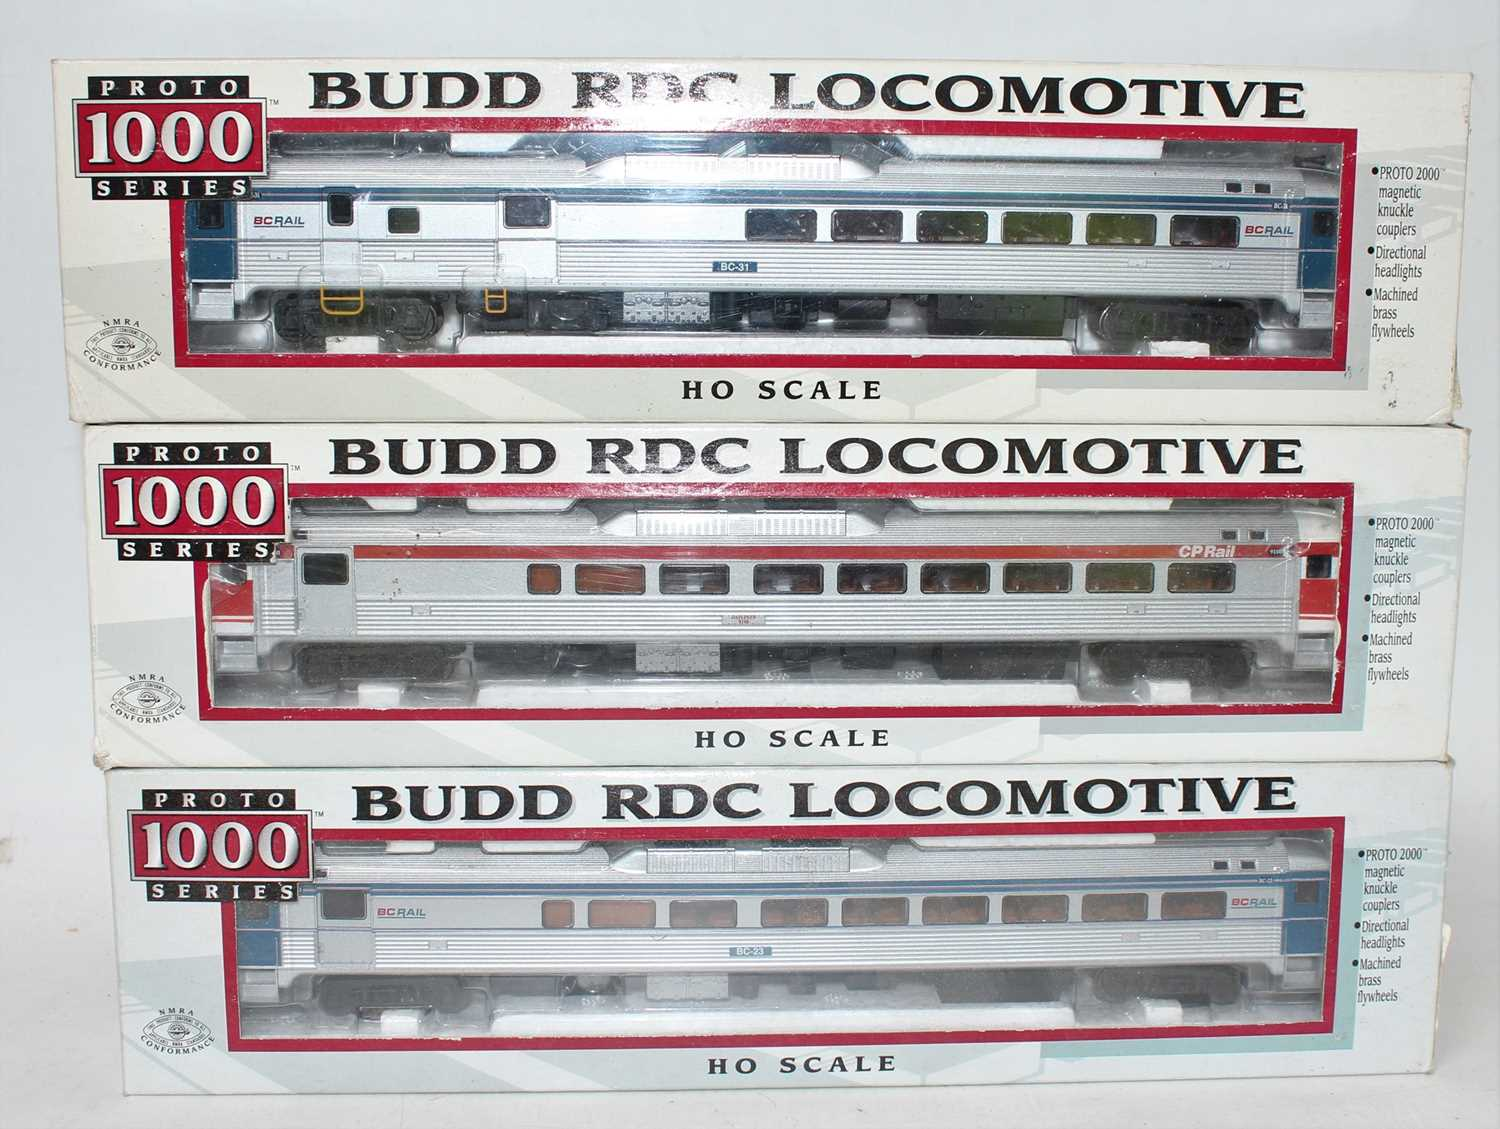 A Proto 1000 series H0 scale Budd RDC locomotive group to include a CP Rail 9100 Dayliner loco